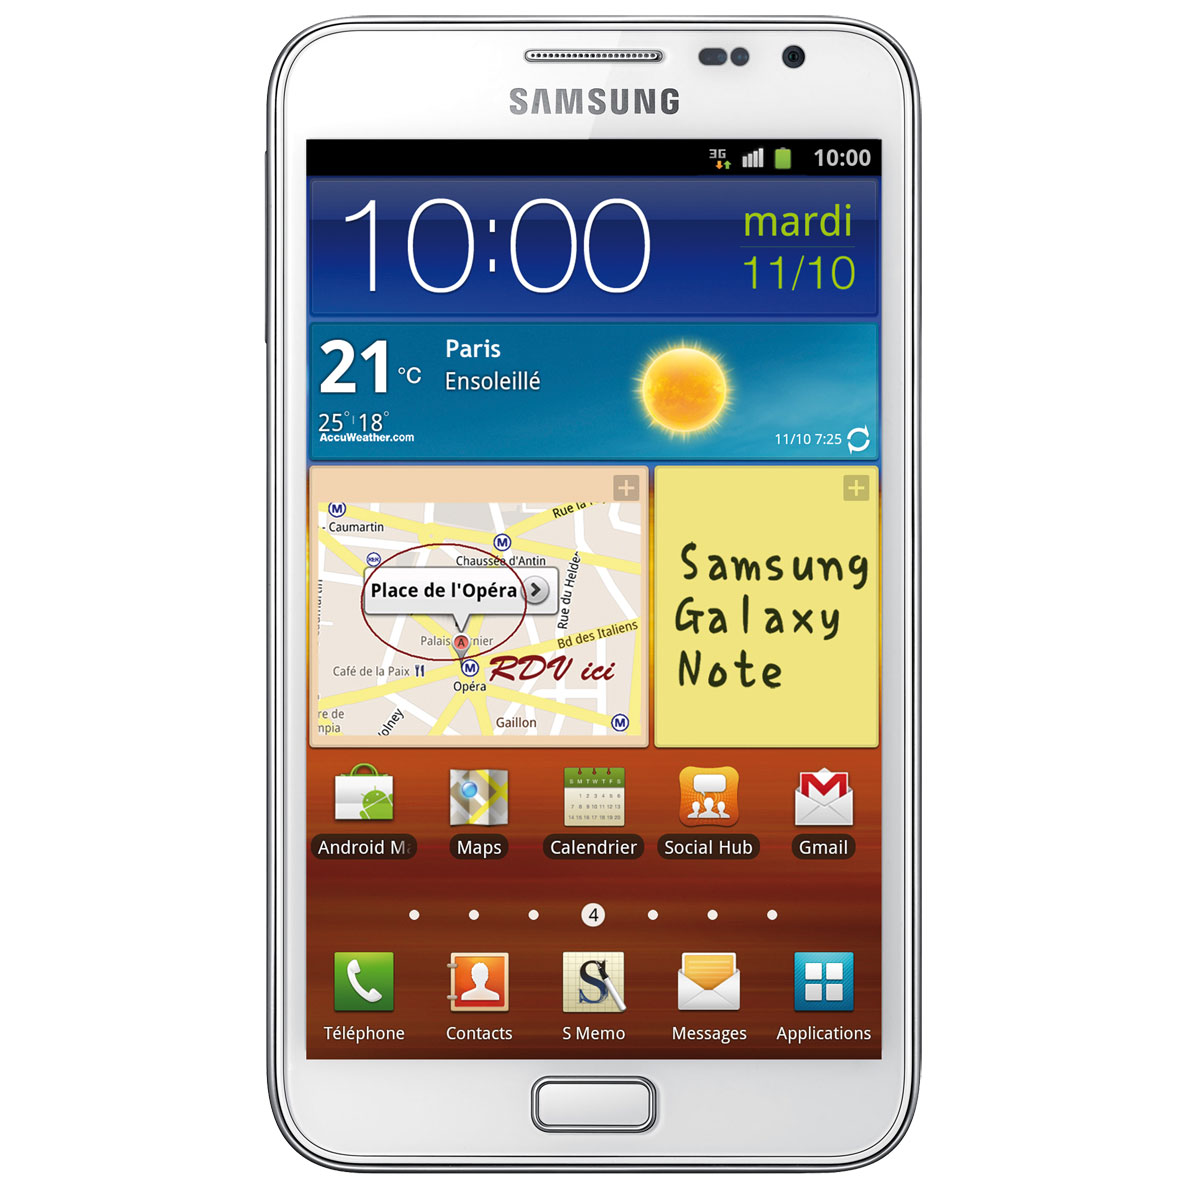 samsung galaxy note gt n7000 blanc mobile smartphone. Black Bedroom Furniture Sets. Home Design Ideas